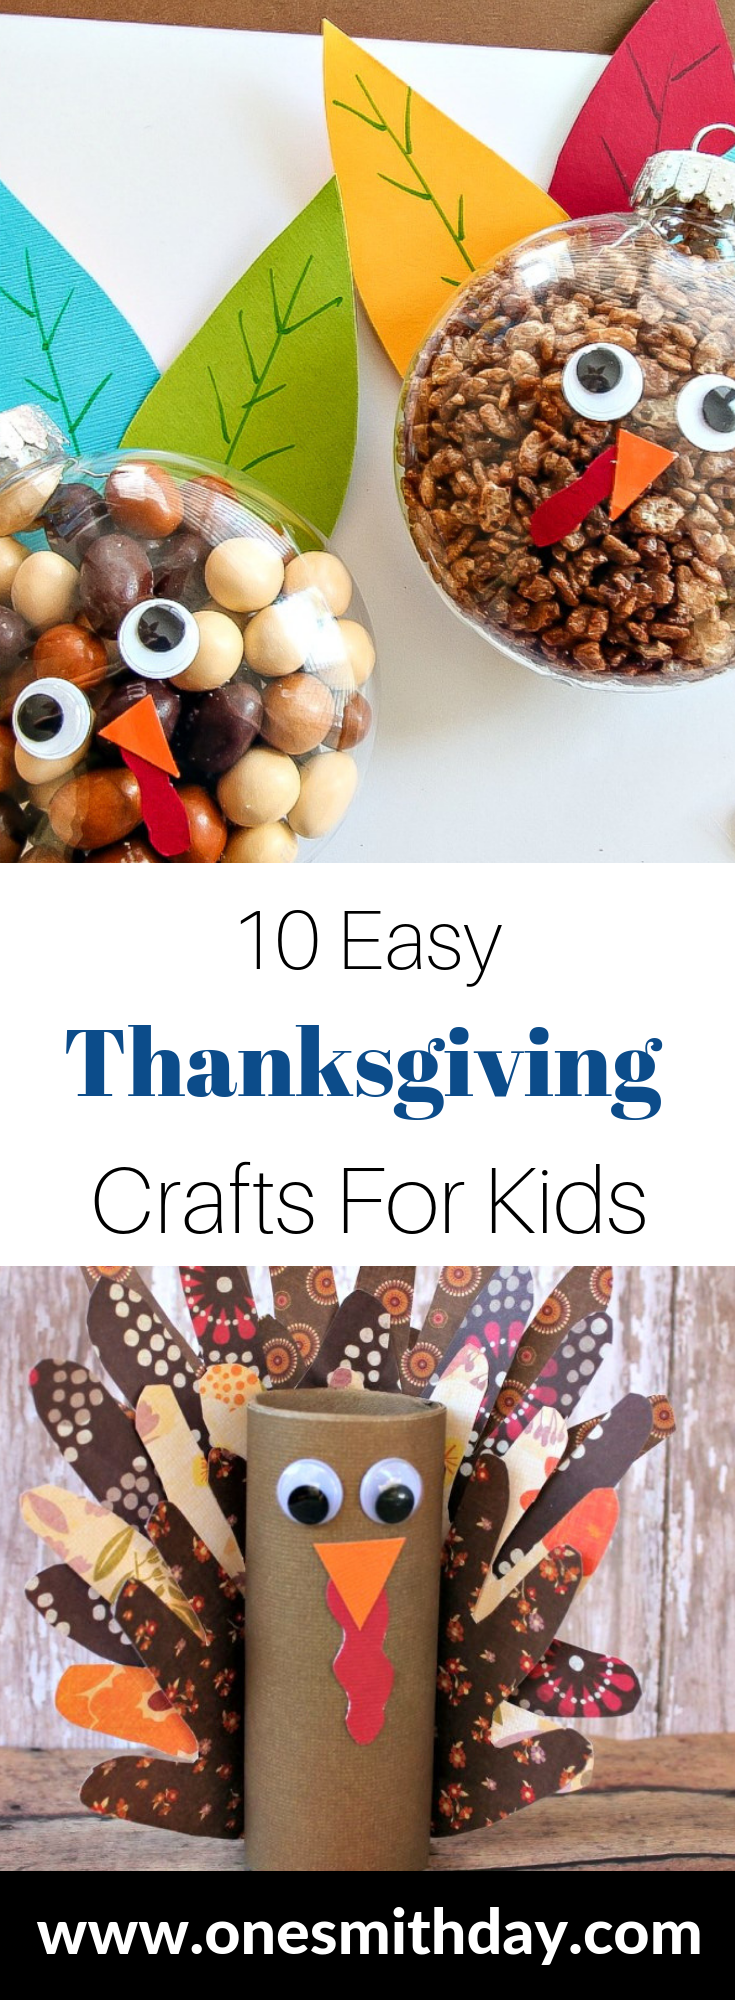 10 Easy Thanksgiving Crafts For Kids In 2020 Easy Thanksgiving Crafts Thanksgiving Kids Thanksgiving Crafts